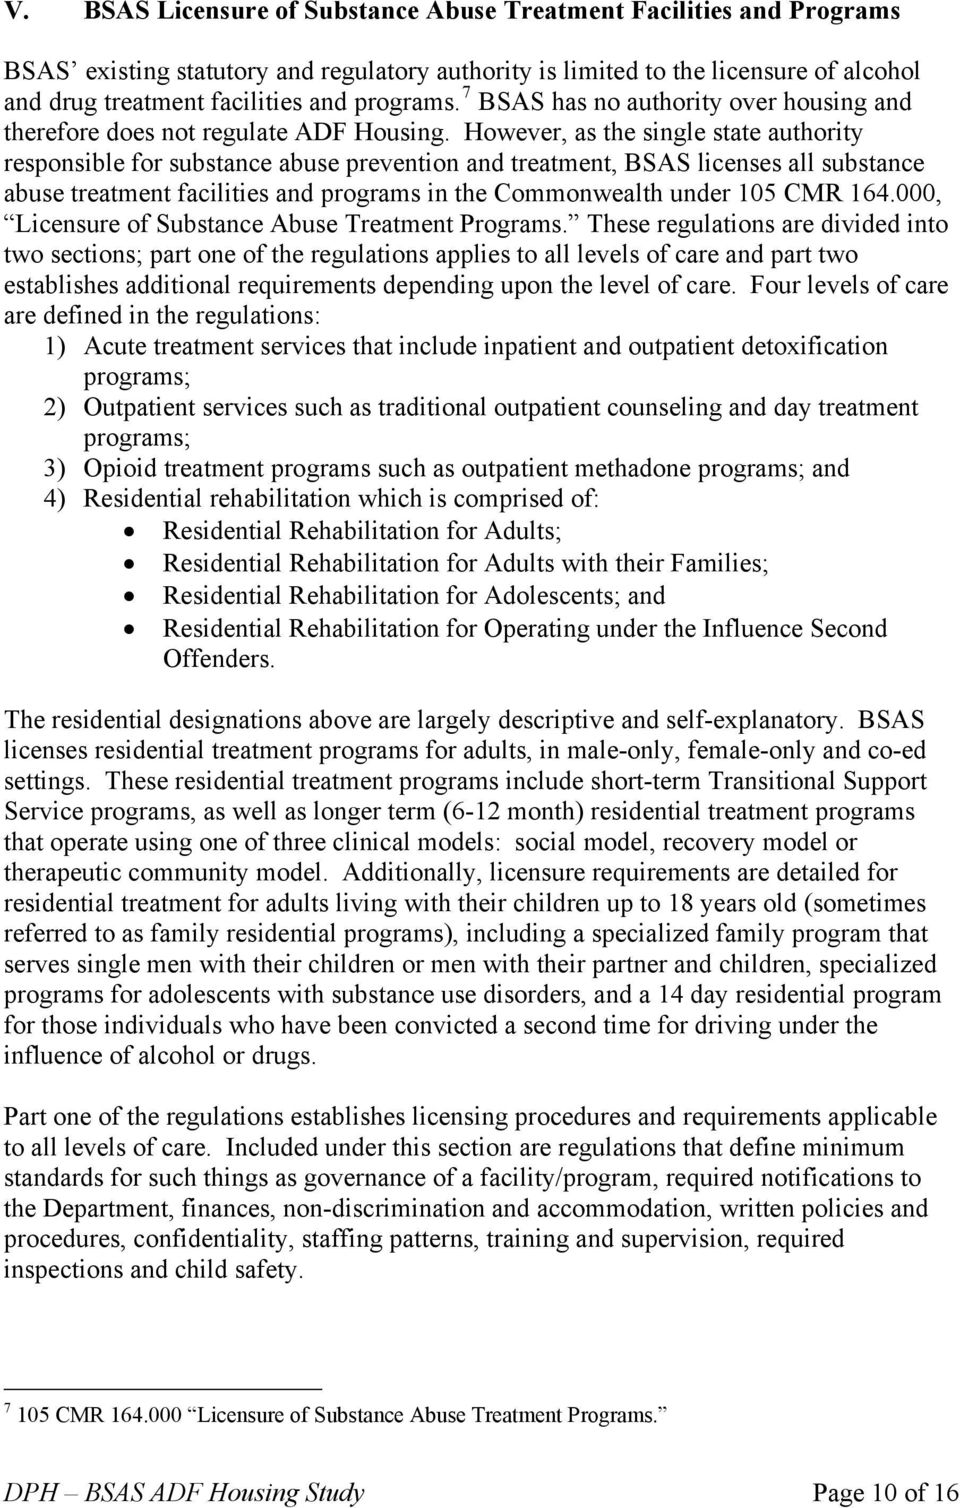 However, as the single state authority responsible for substance abuse prevention and treatment, BSAS licenses all substance abuse treatment facilities and programs in the Commonwealth under 105 CMR